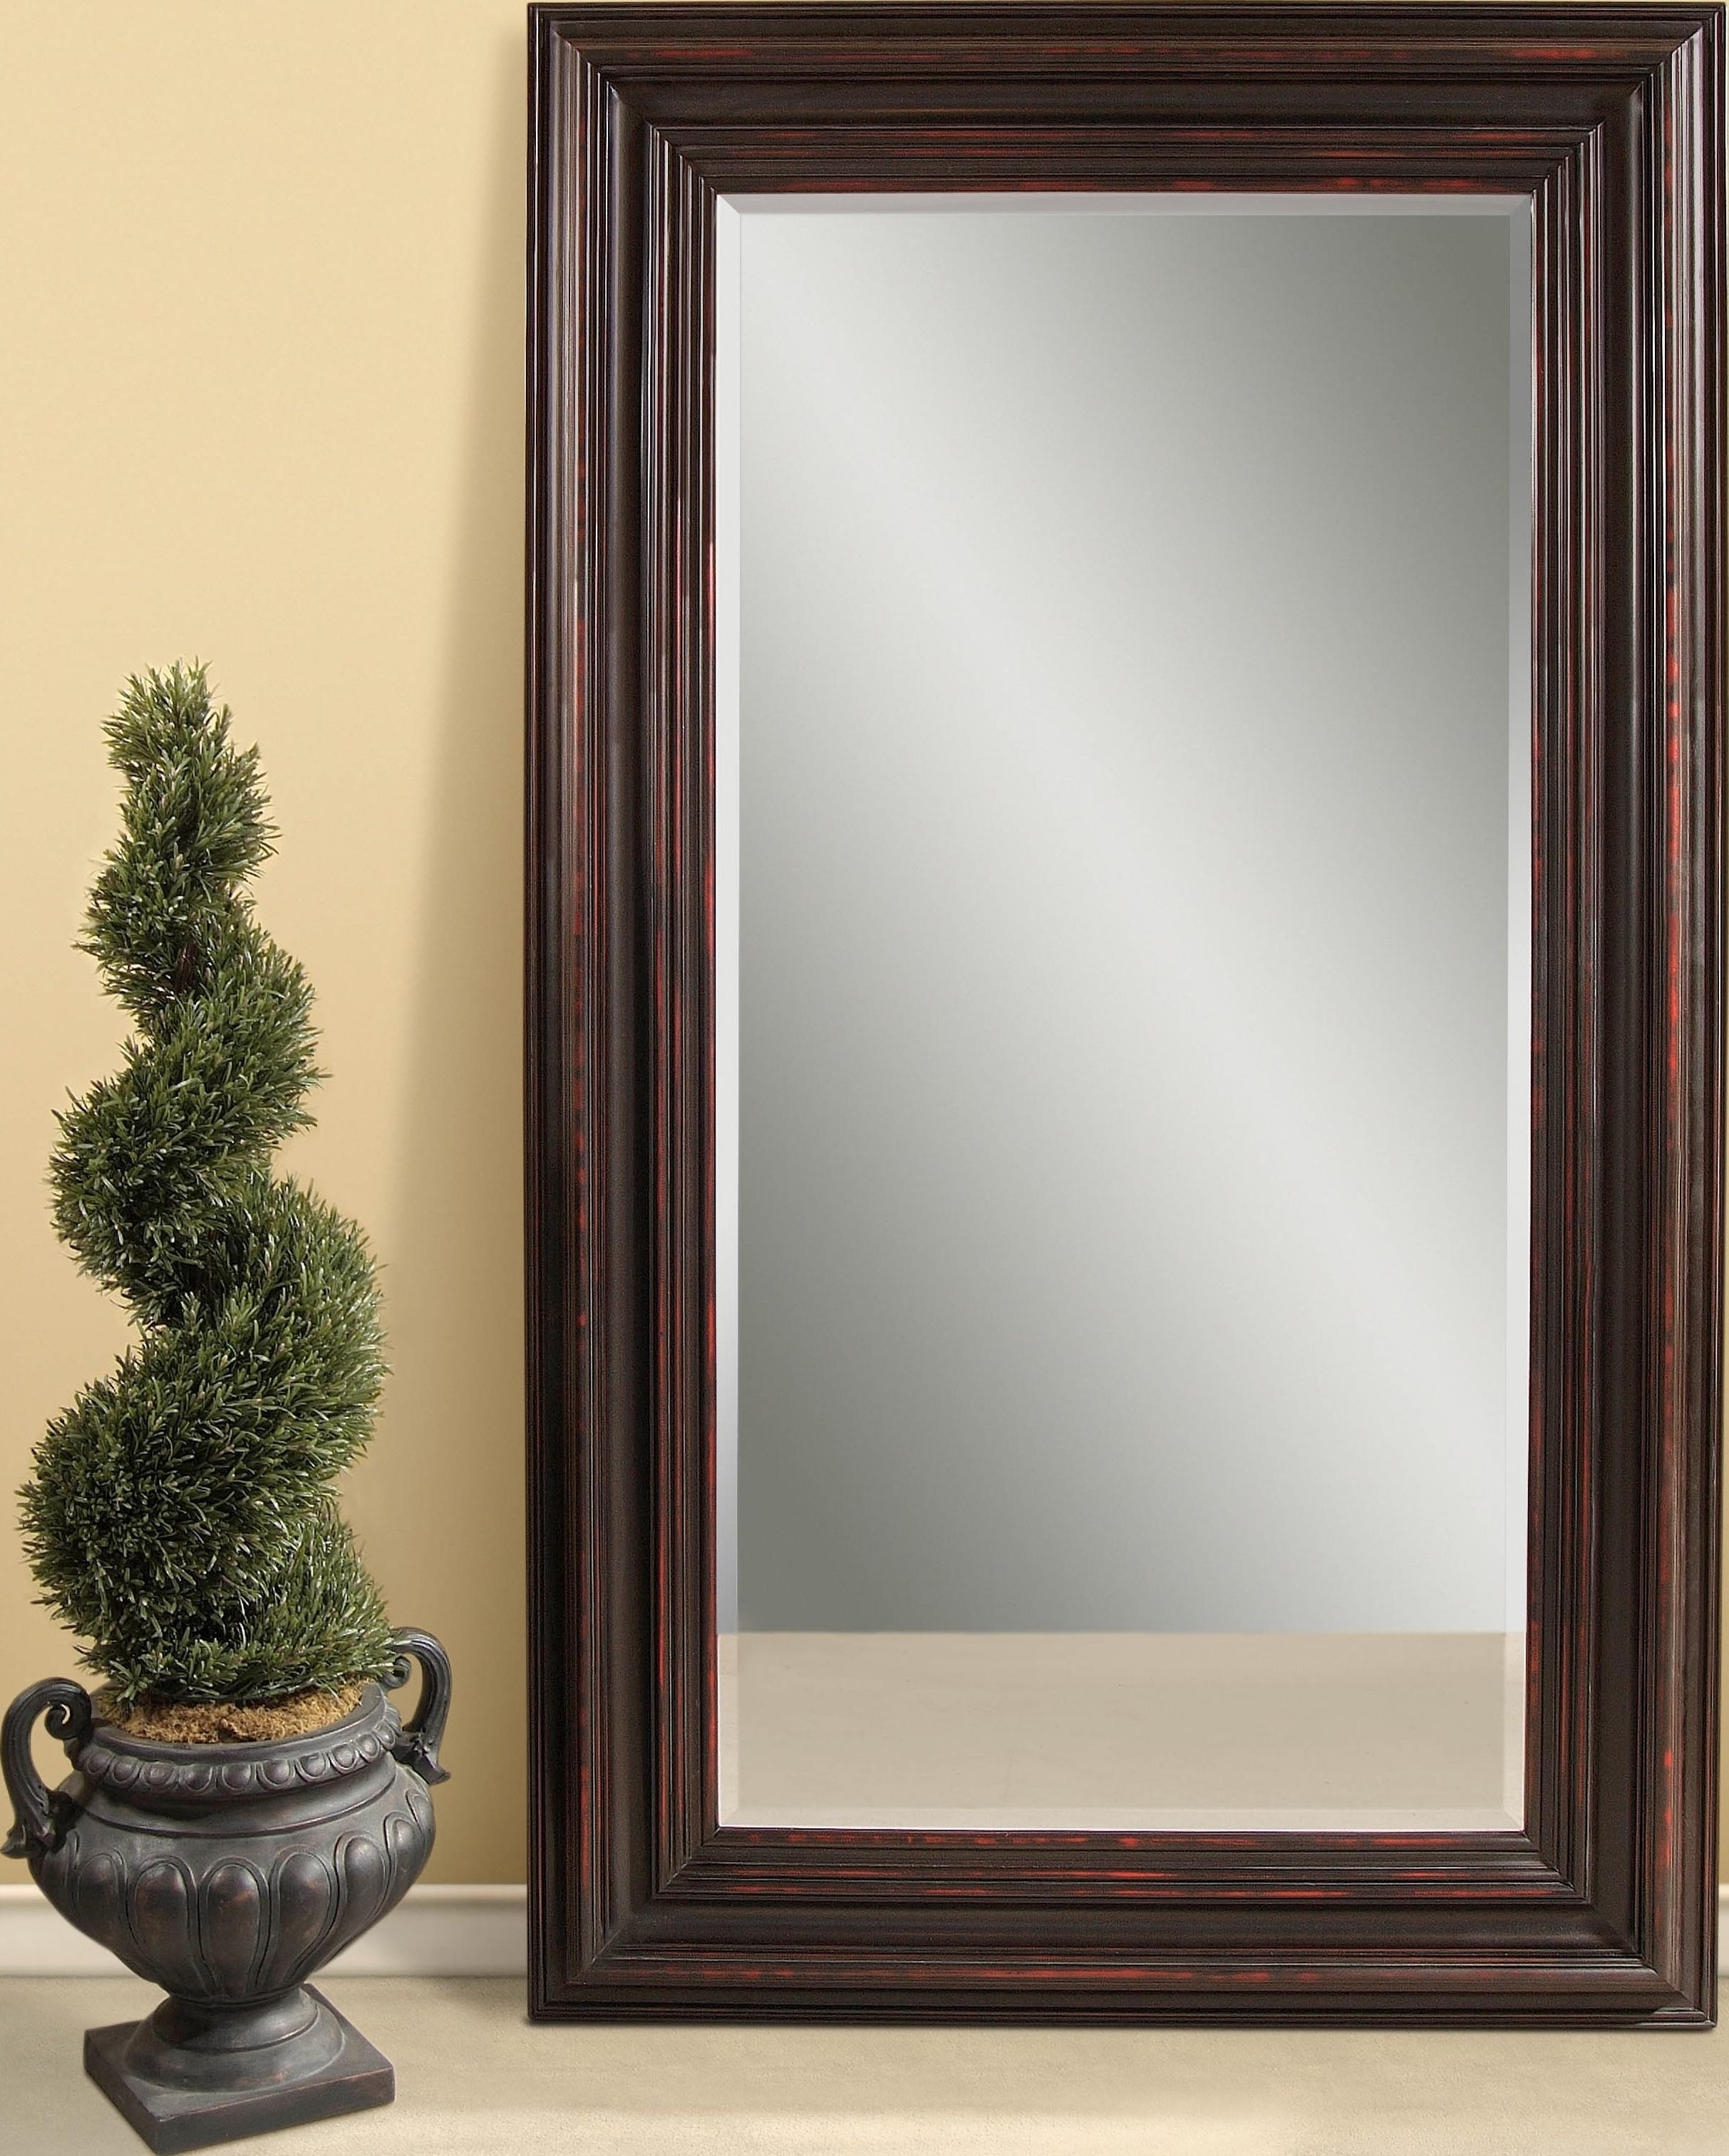 20 Collection Of Black Wall Mirrors For Sale Mirror Ideas